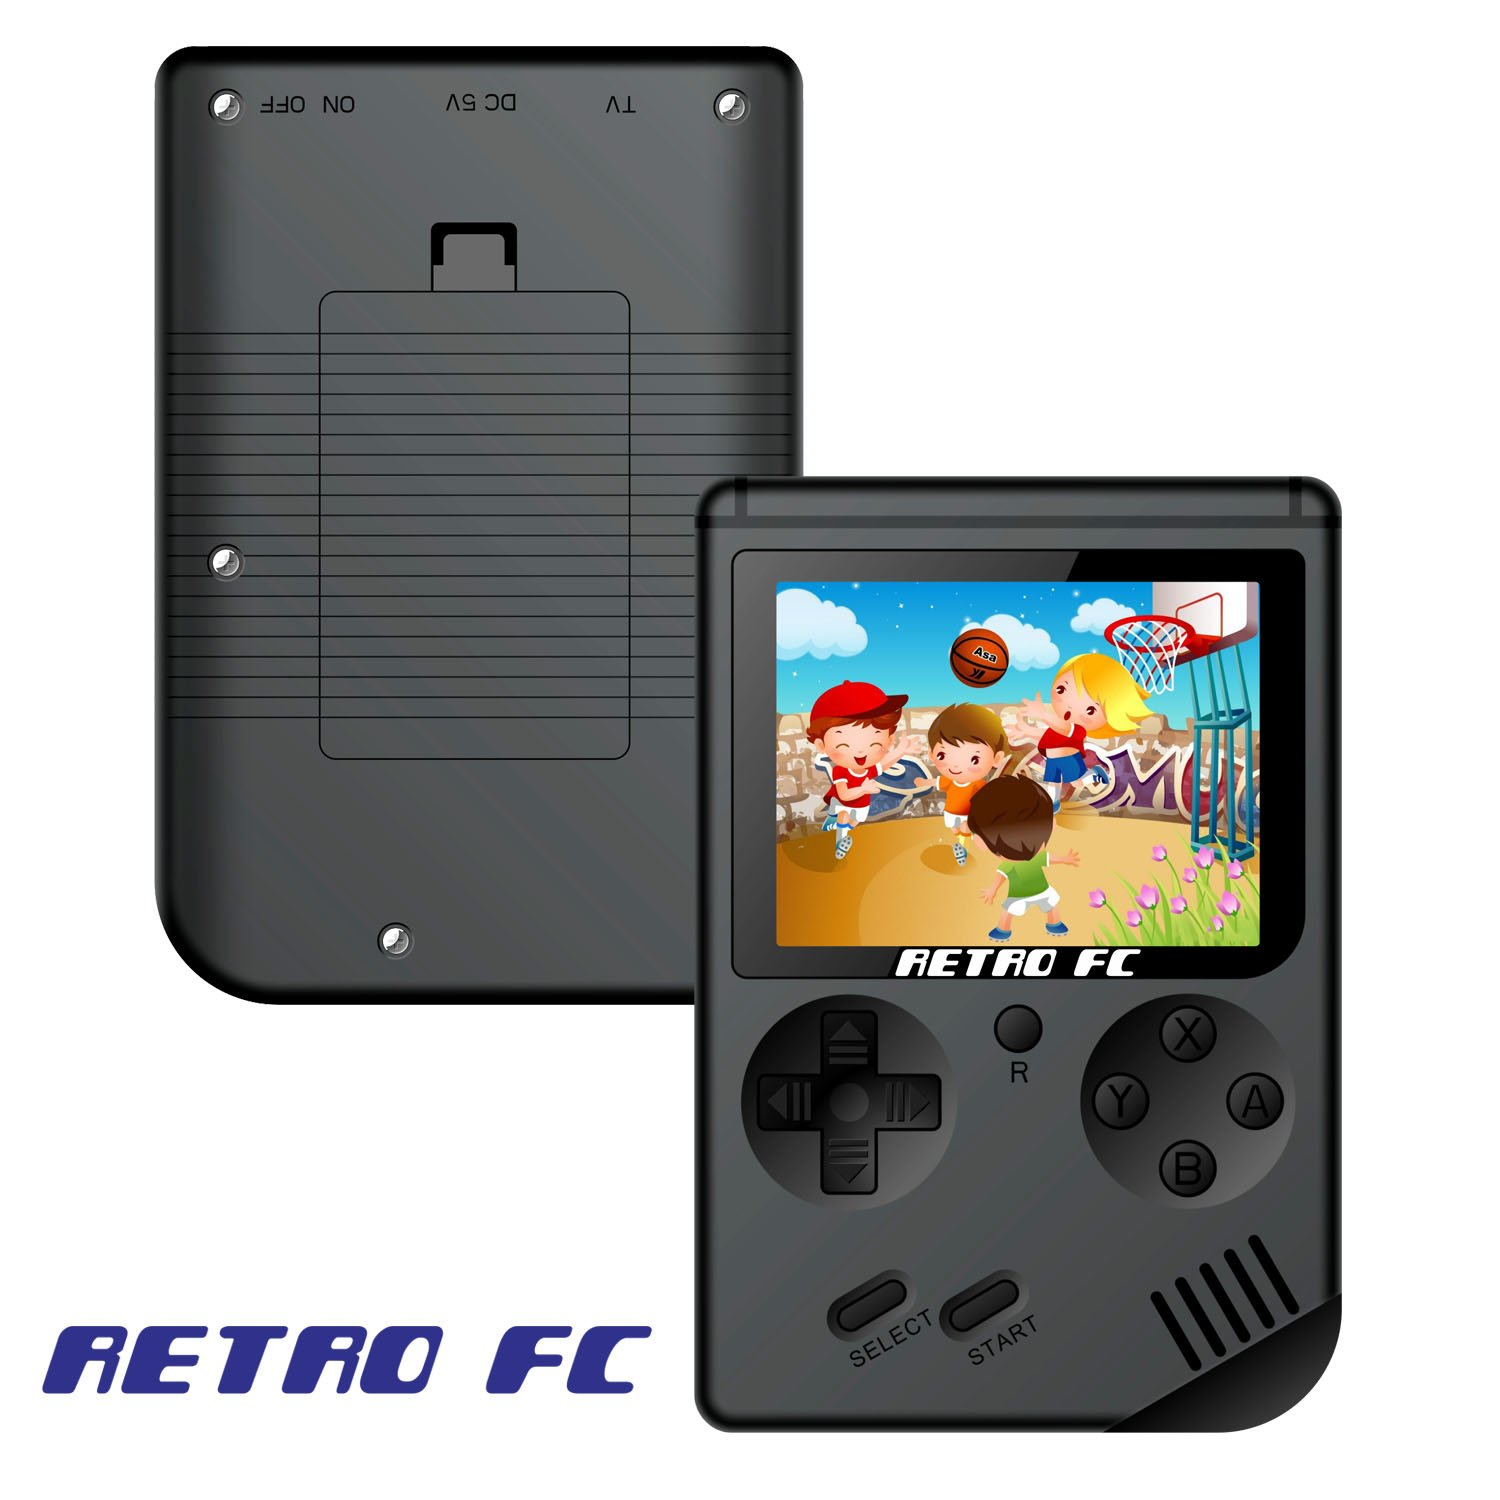 Handheld Game Console , Retro FC Game Console 3 Inch Screen 168 Classic Games TV Output Game Player , Birthday Present for Children - Black by MJKJ (Image #2)